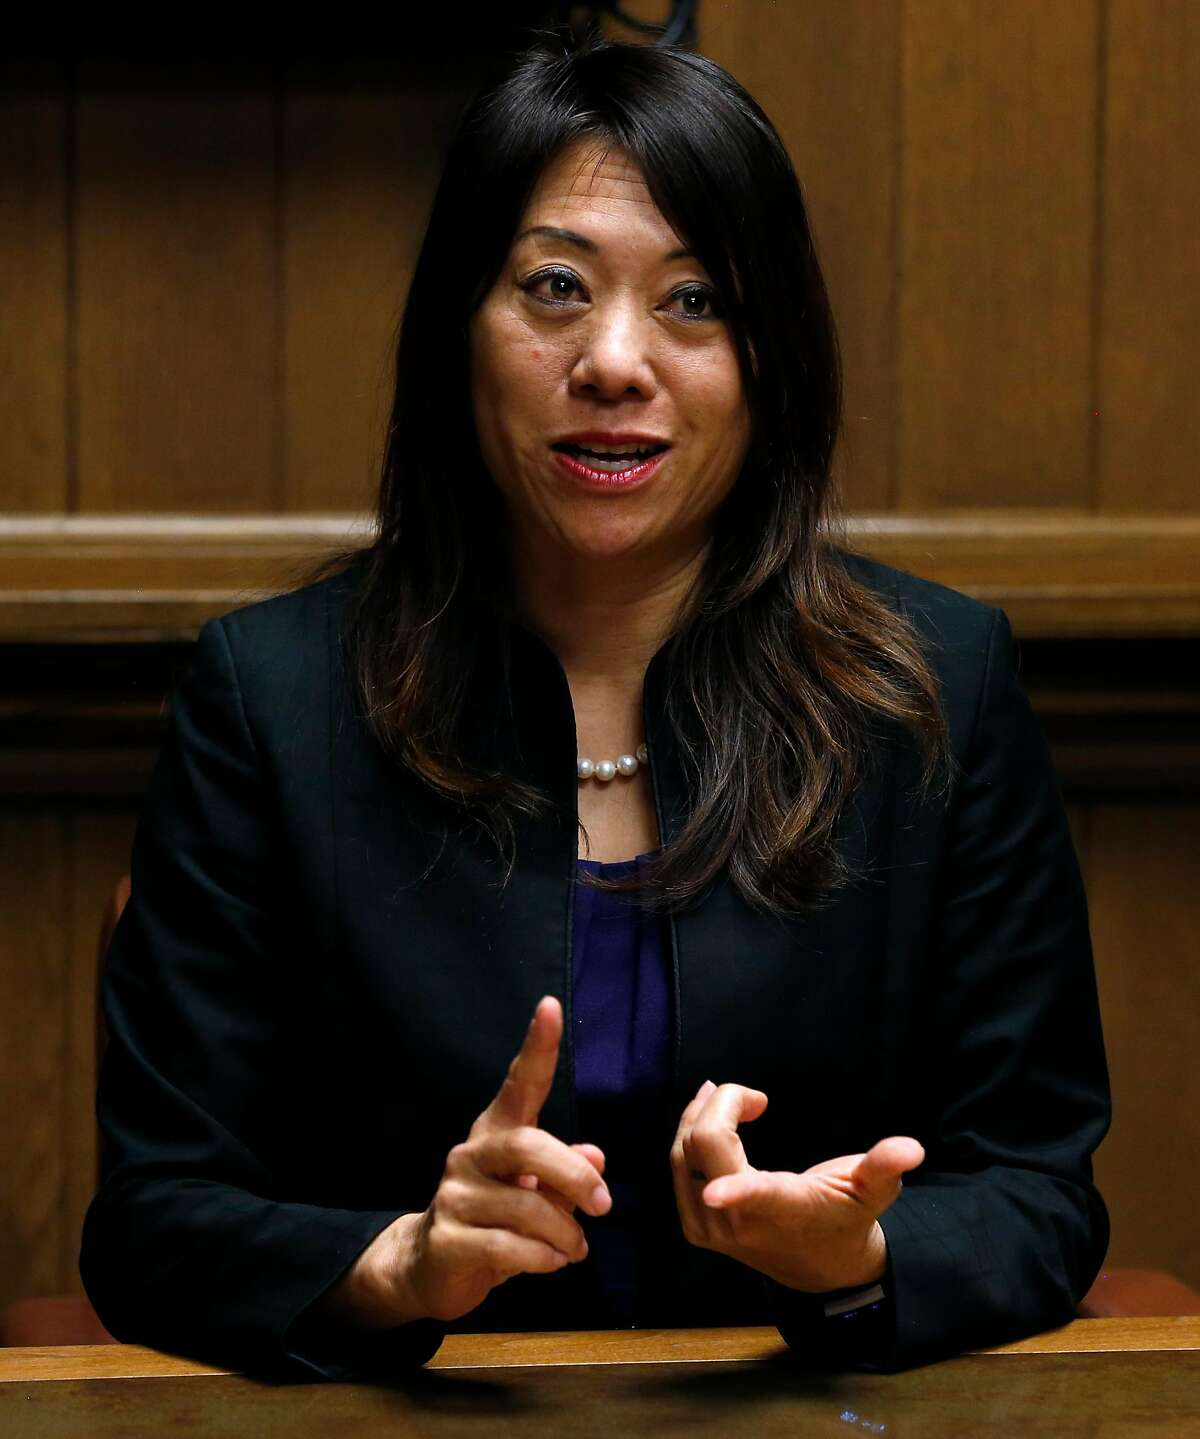 Candidate for state treasurer Fiona Ma meets with the Chronicle Editorial Board in San Francisco, Calif. on Wednesday, April 25, 2018.